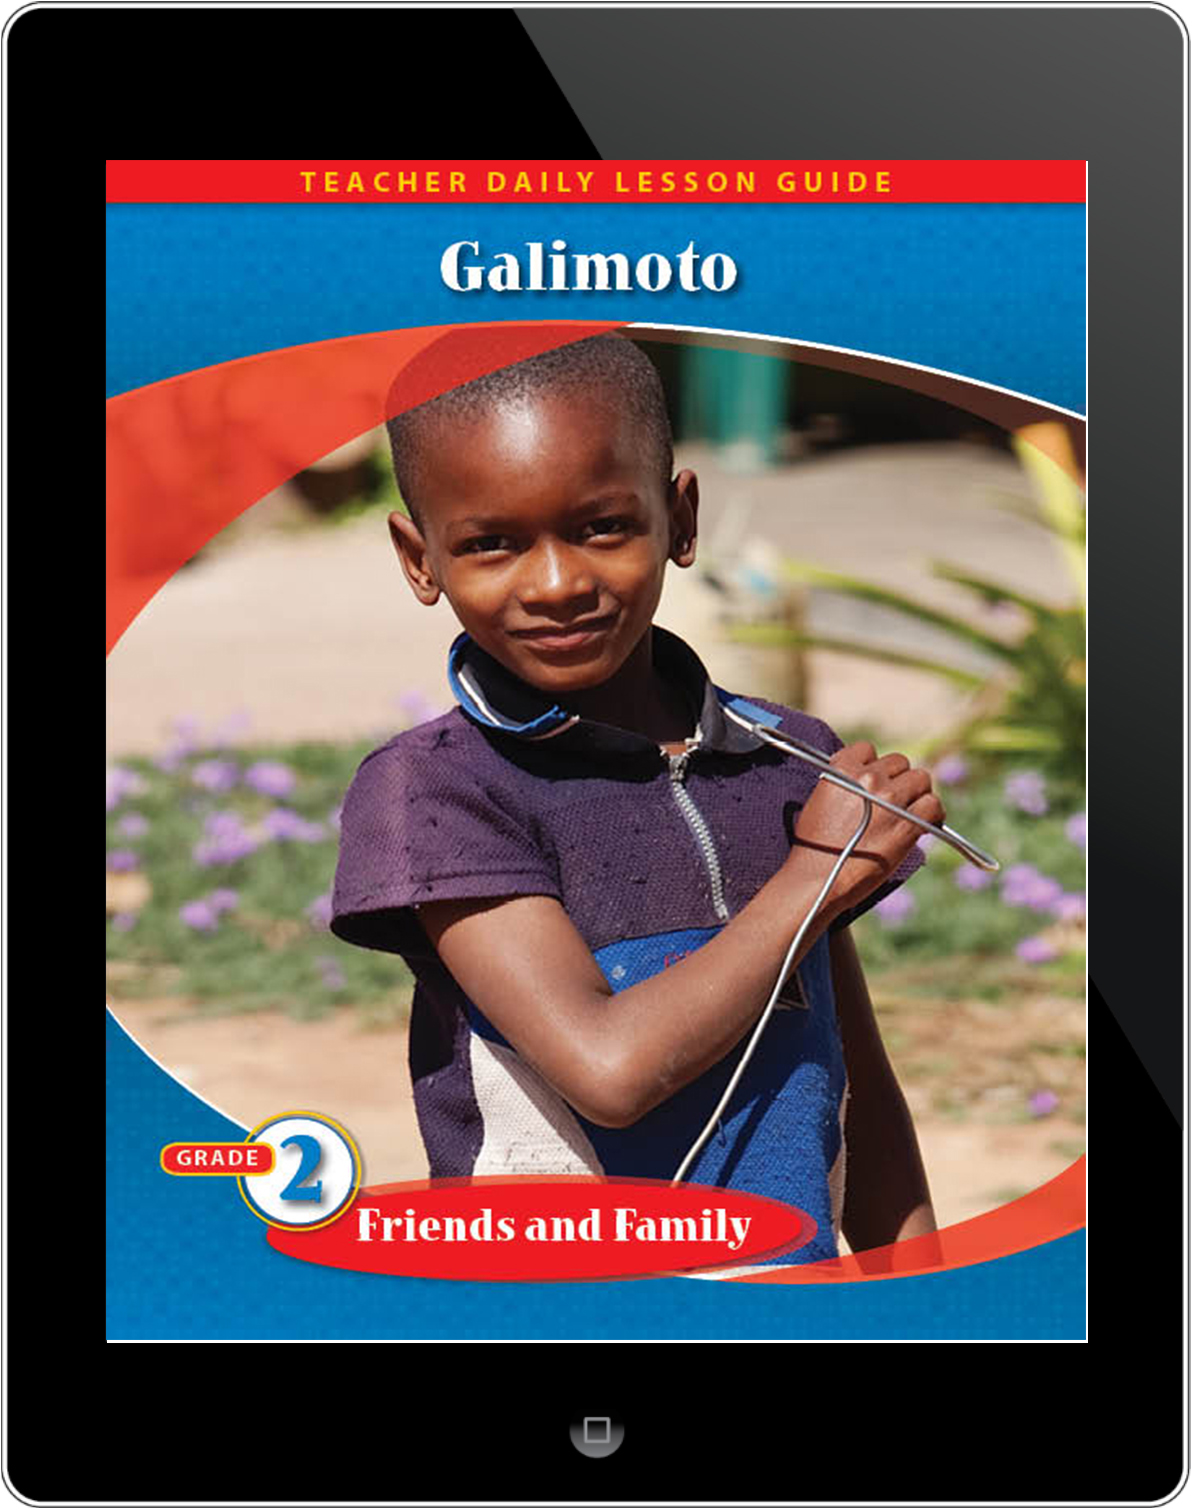 Pathways2.0 Grade 2 Friends and Family Unit: Galimoto Daily Lesson Guide 5 Year License